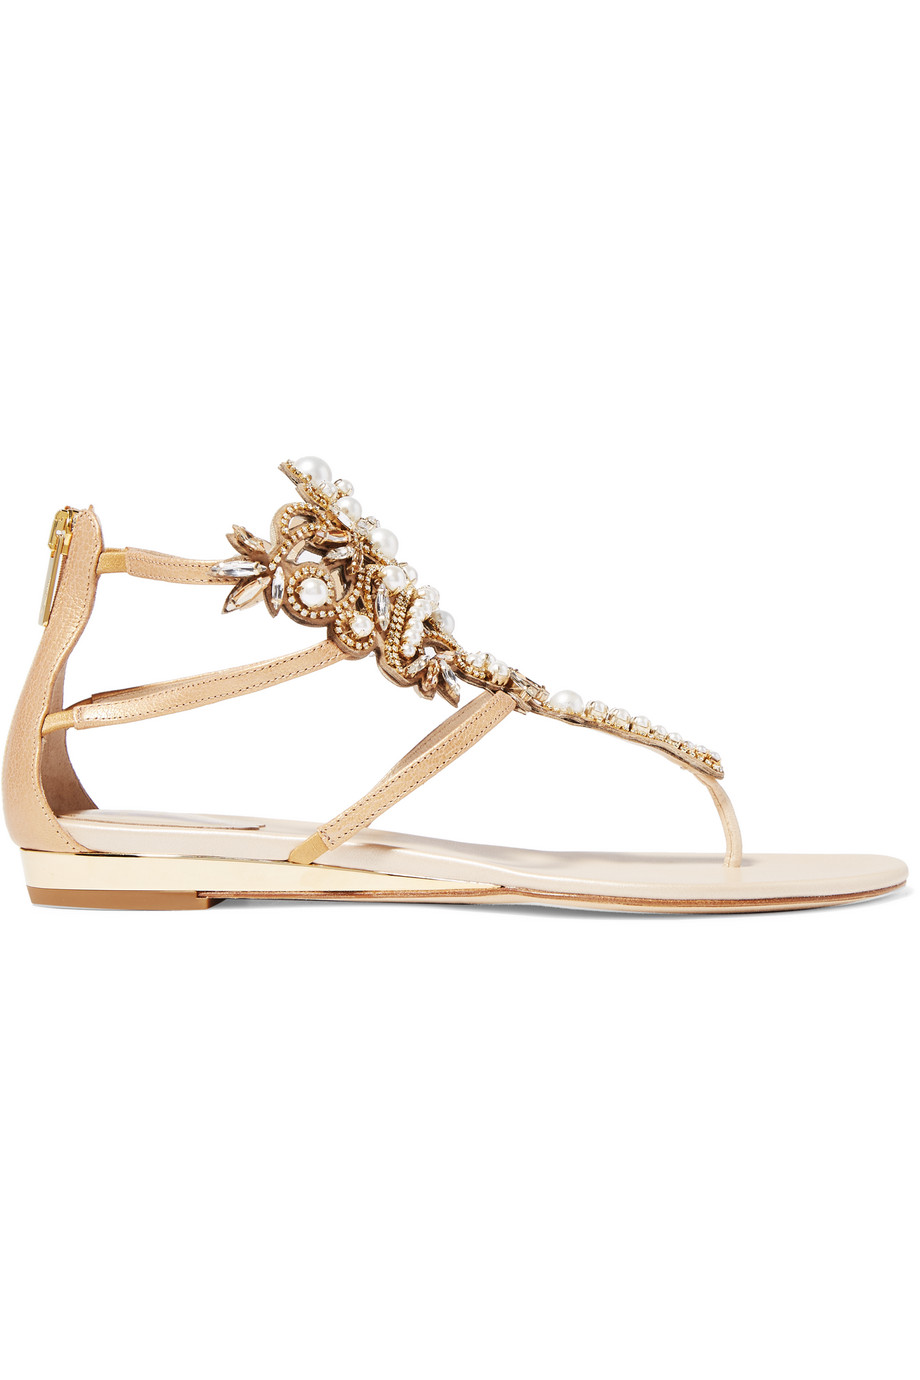 René Caovilla Faux Pearl and Crystal-Embellished Leather Sandals, Size: 38.5